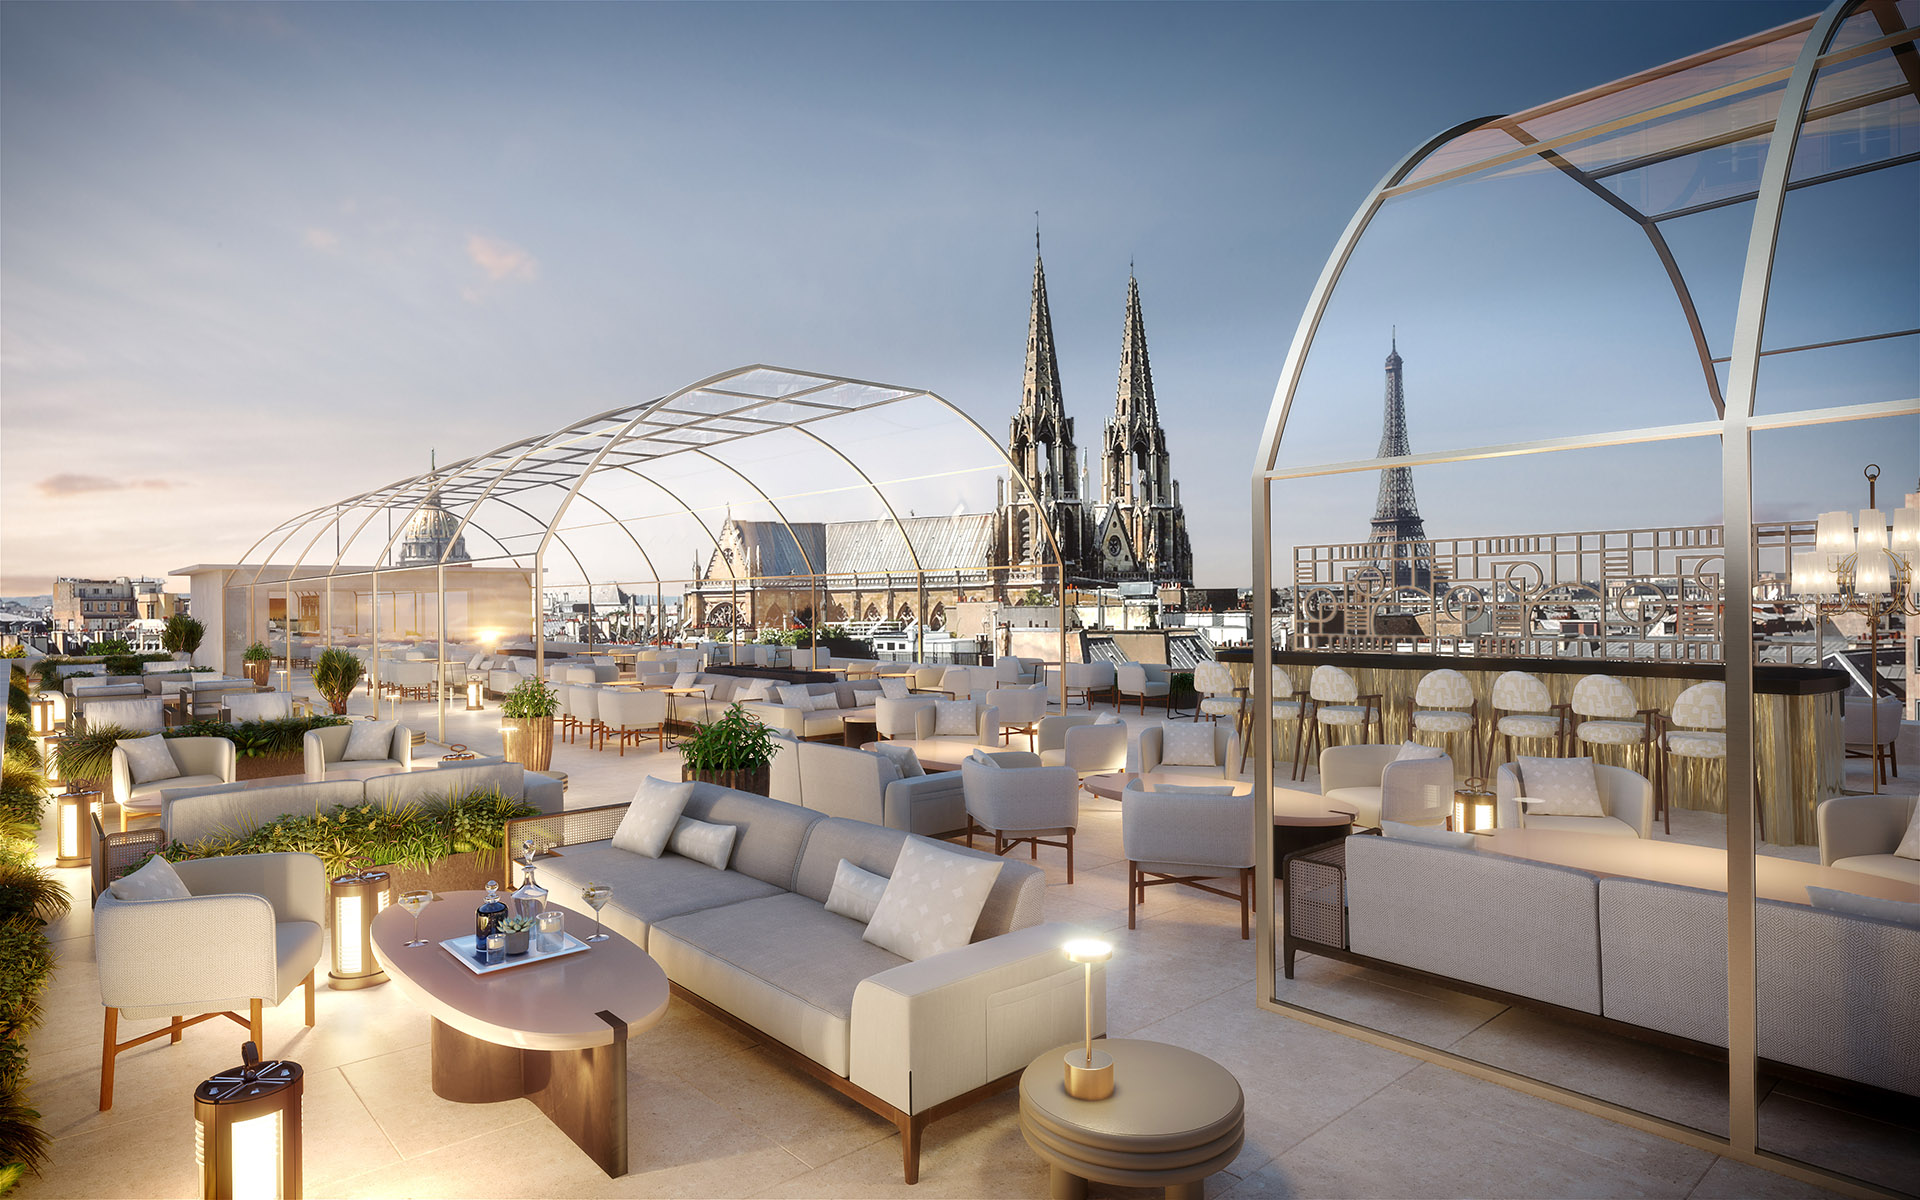 3D computer generated image of a luxurious terrace overlooking Paris